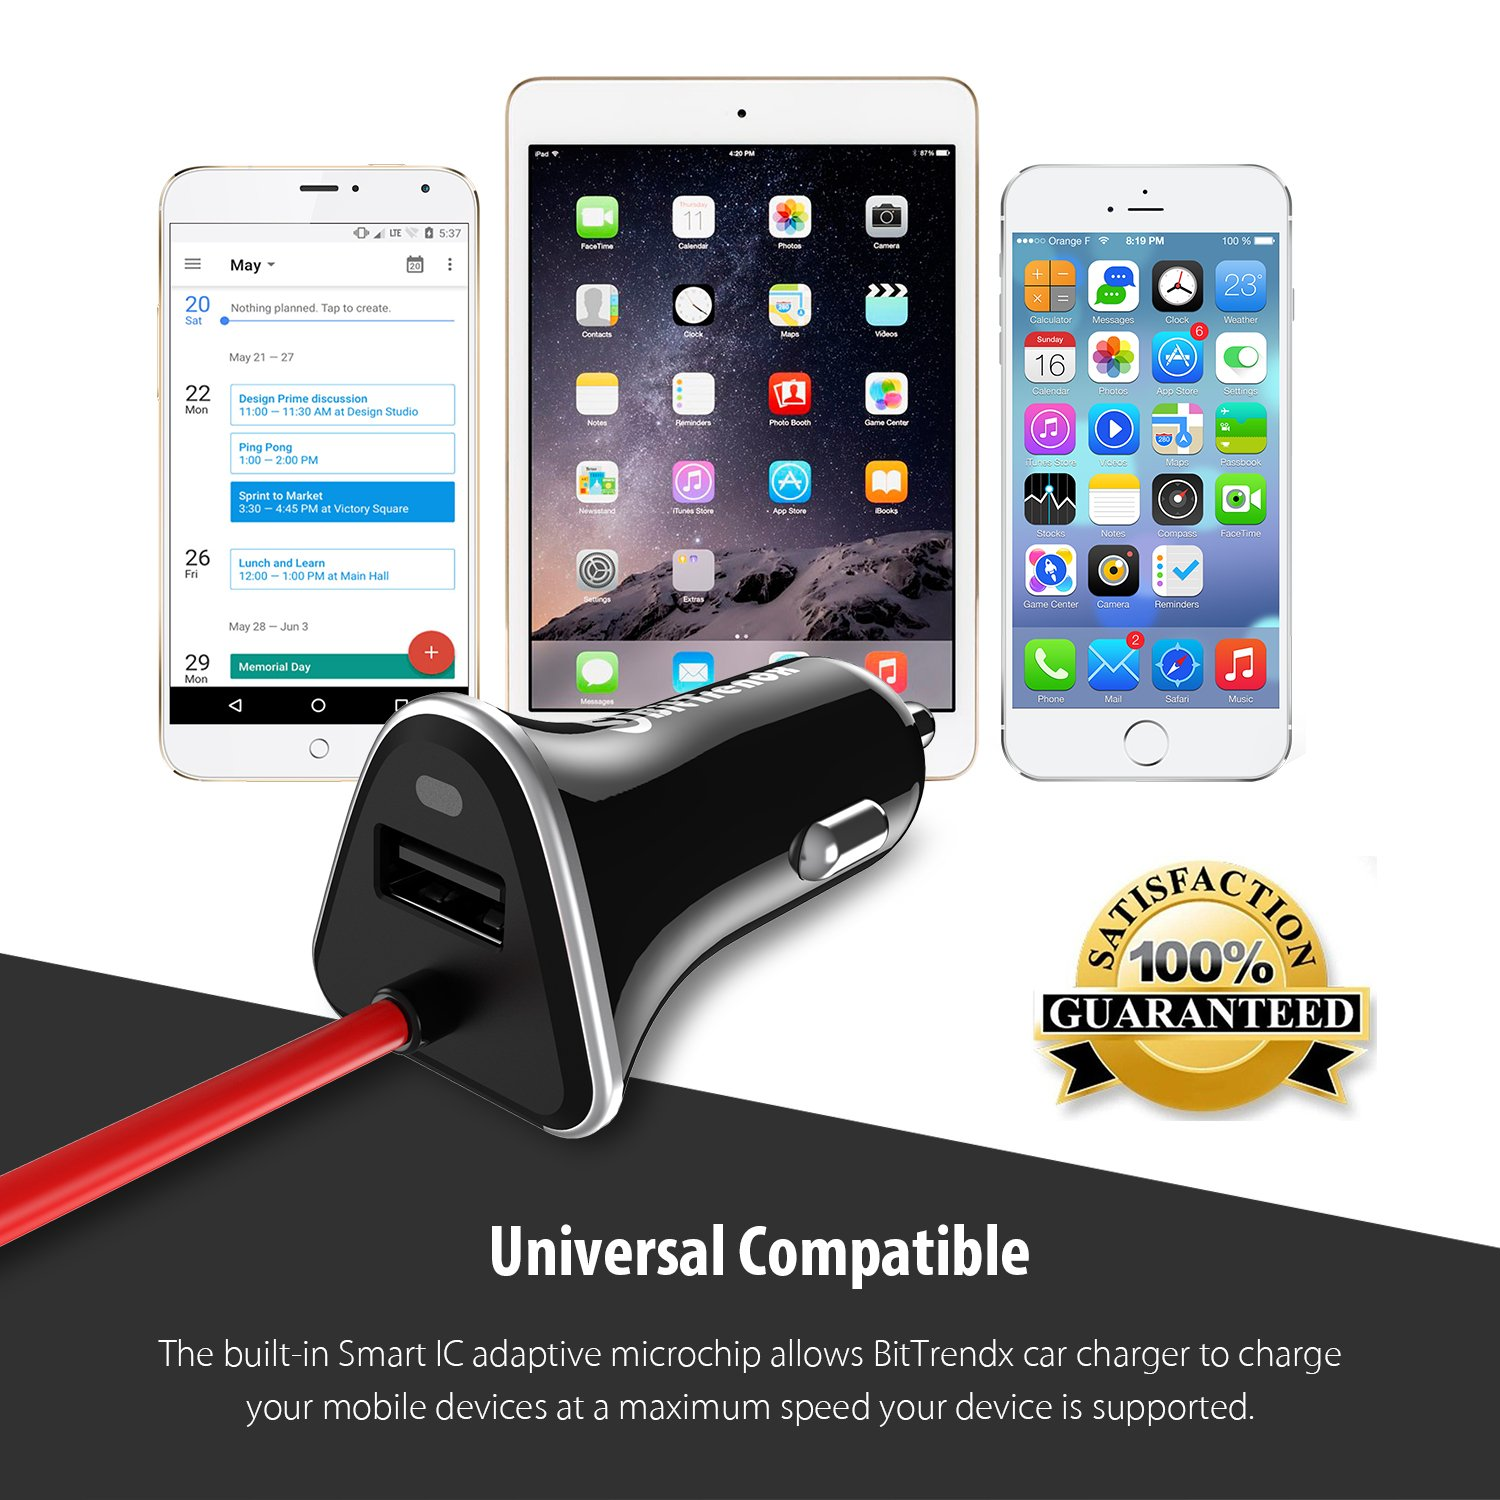 BitTrendx Black Dual Rapid Smart Phone USB Car Charger With Built in Smart Cable Compatible With iPhone Xs Max XR X 8 Plus 7 Plus 6S Plus Se 6 Plus 5 5S 5c iPad Pro Air Mini 2 3 4 and Extra USB RCF-R44C-2.4A